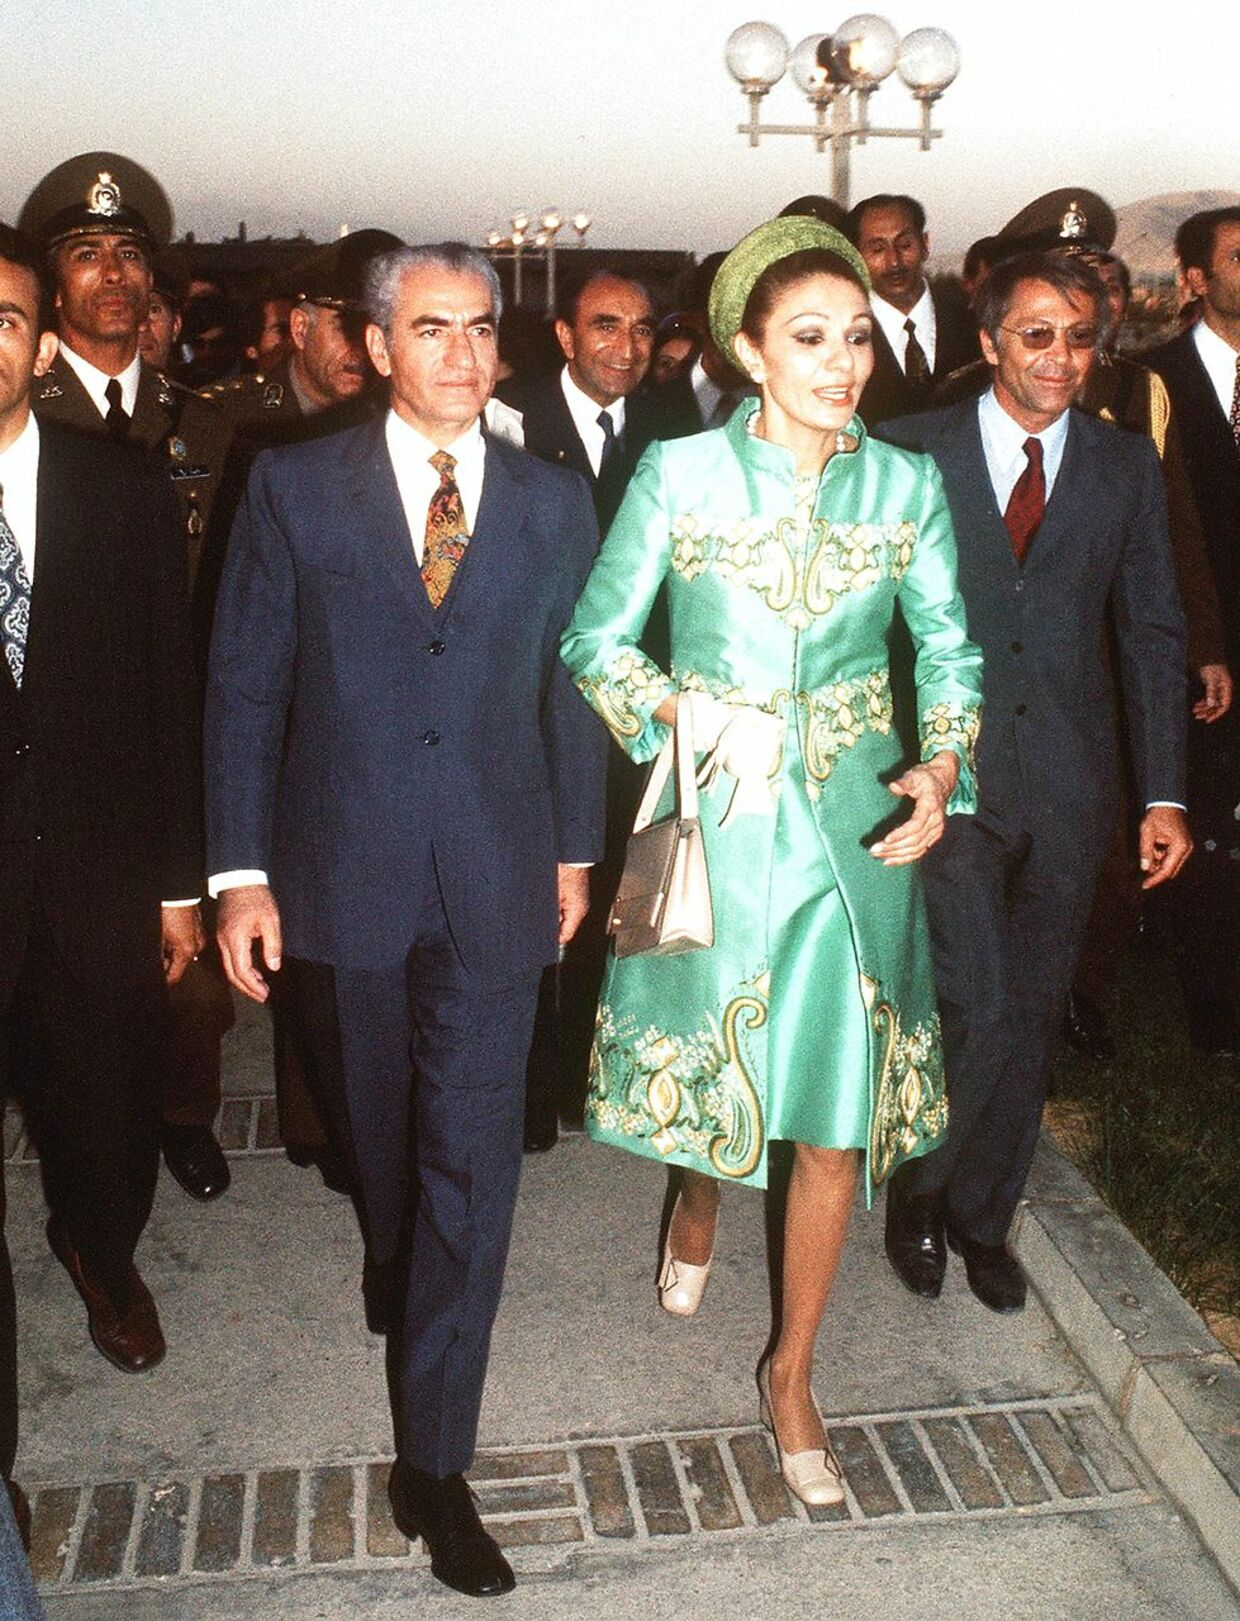 Picture dated October 1971 of Chah Mohammed Reza Palhavi and his wife, Iranian impress Farah Diba, arriving at a commemoration of the 2500th anniversary of the Persian empire in Persepolis. STF / AFP